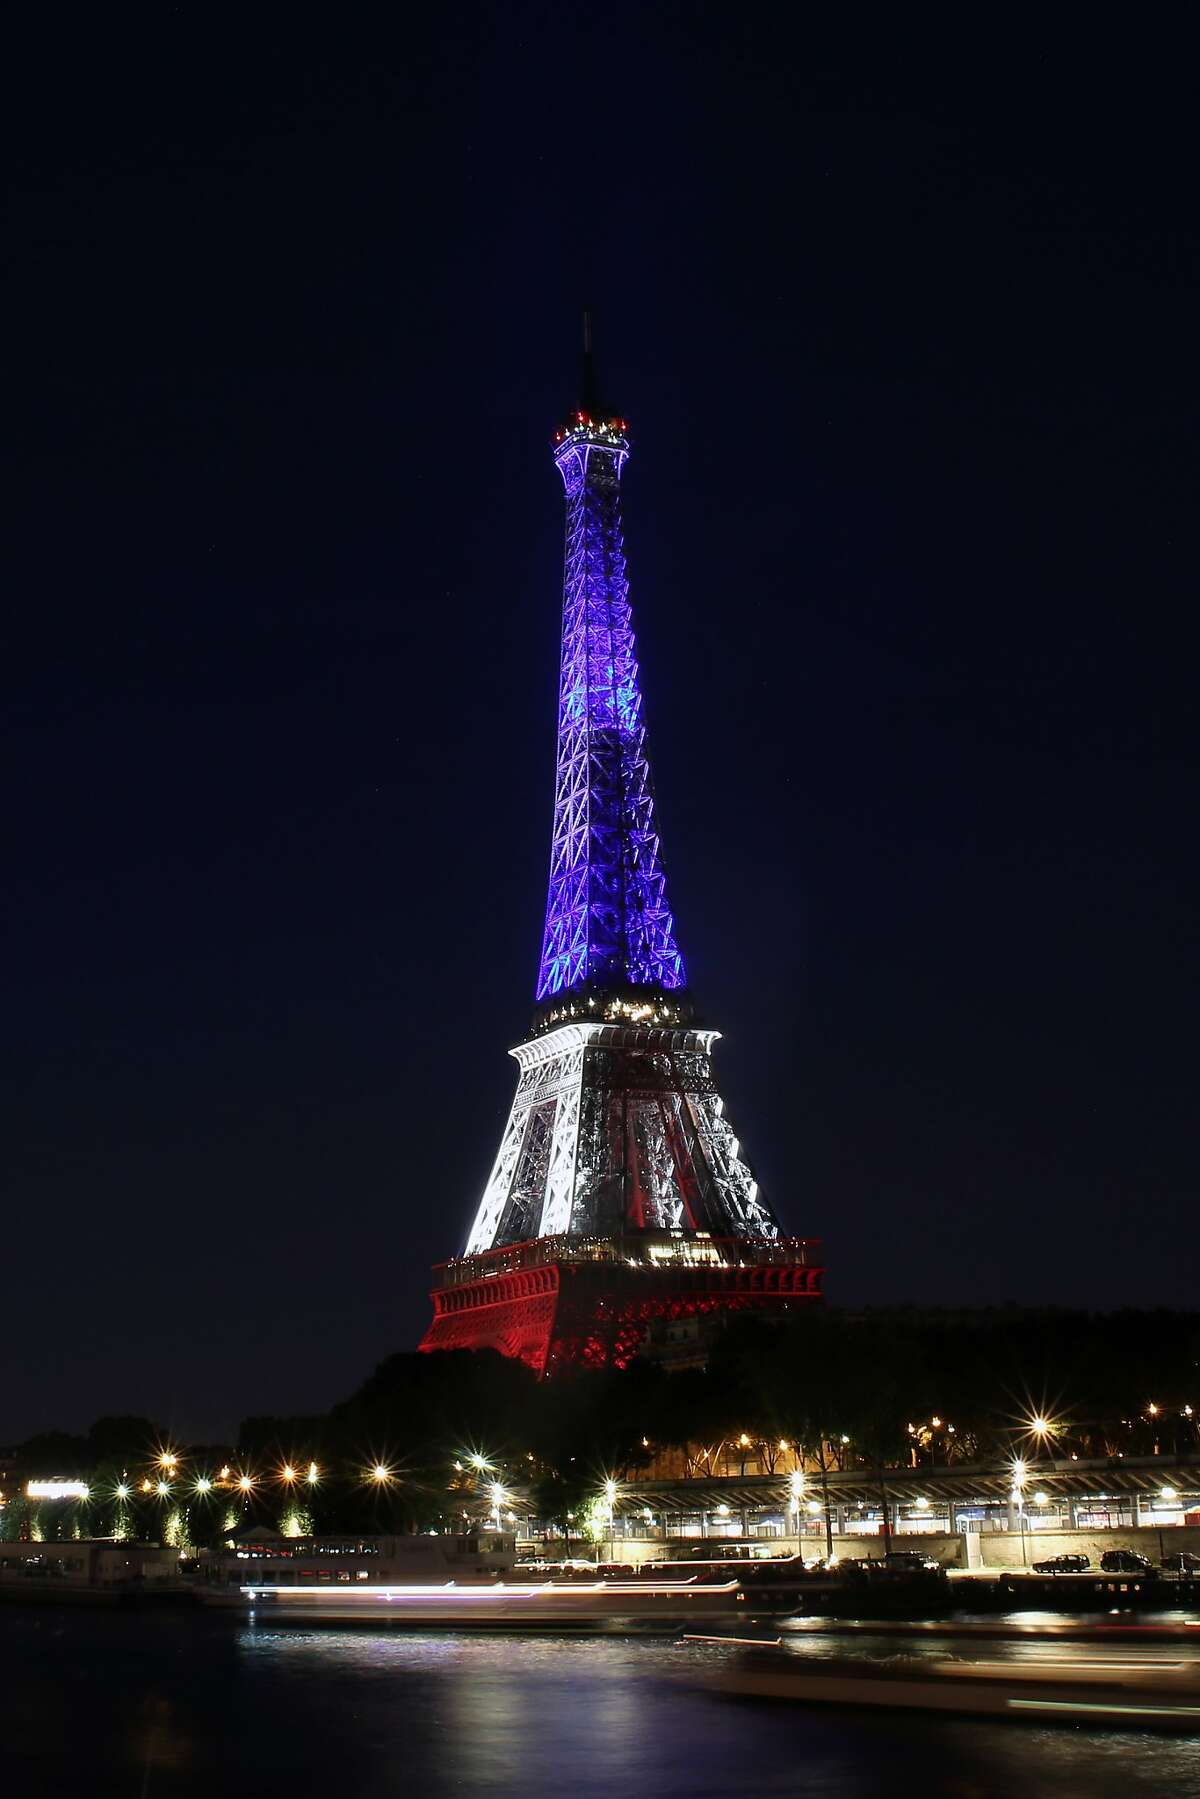 The Eiffel Tower is illuminated in the French national colors in honor of the victims of Thursday's attack in Nice, south of France, in Paris Friday, July 15, 2016. As new details emerged Friday about the Tunisian man who drove a truck through crowds celebrating Bastille Day in Nice, killing at least 80 people and wounding hundreds others, French leaders extended a state of emergency imposed after the Nov. 13 Paris attacks and vowed to deploy thousands of police reservists on the streets. (AP Photo/Thibault Camus)